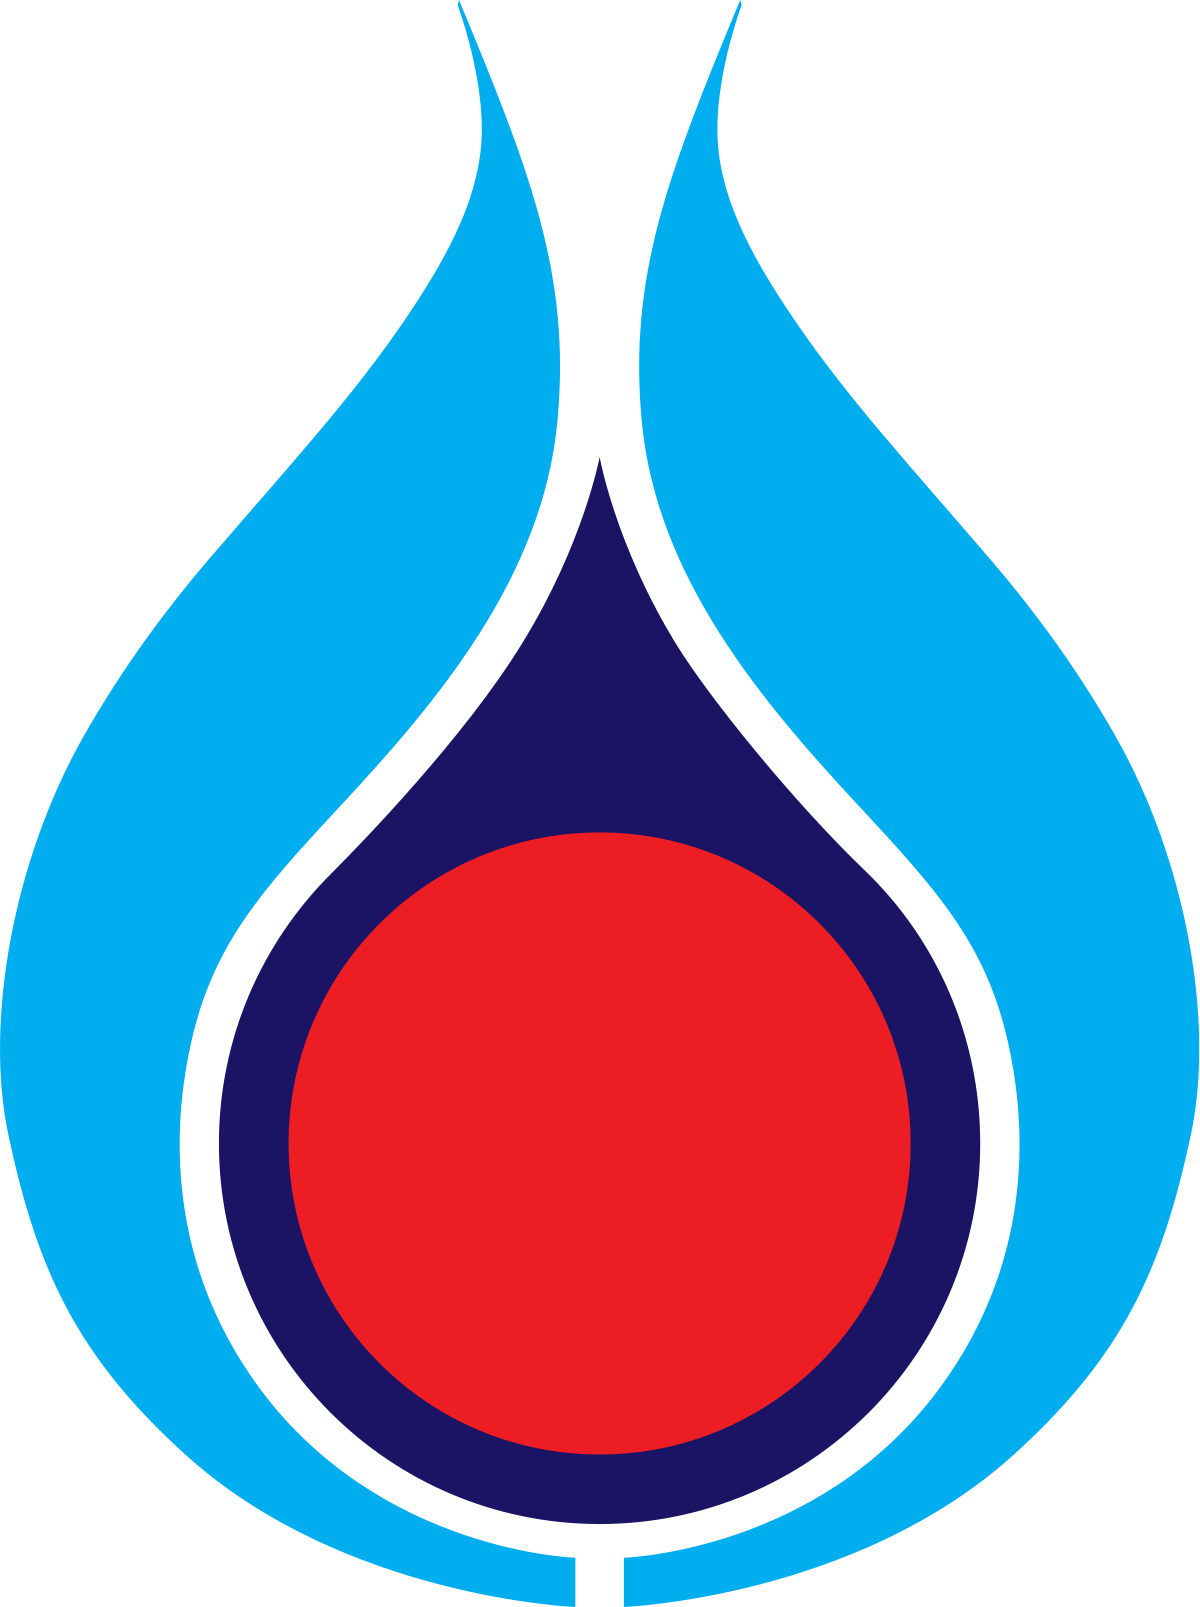 Ptt public company limited. Gas clipart petrochemical